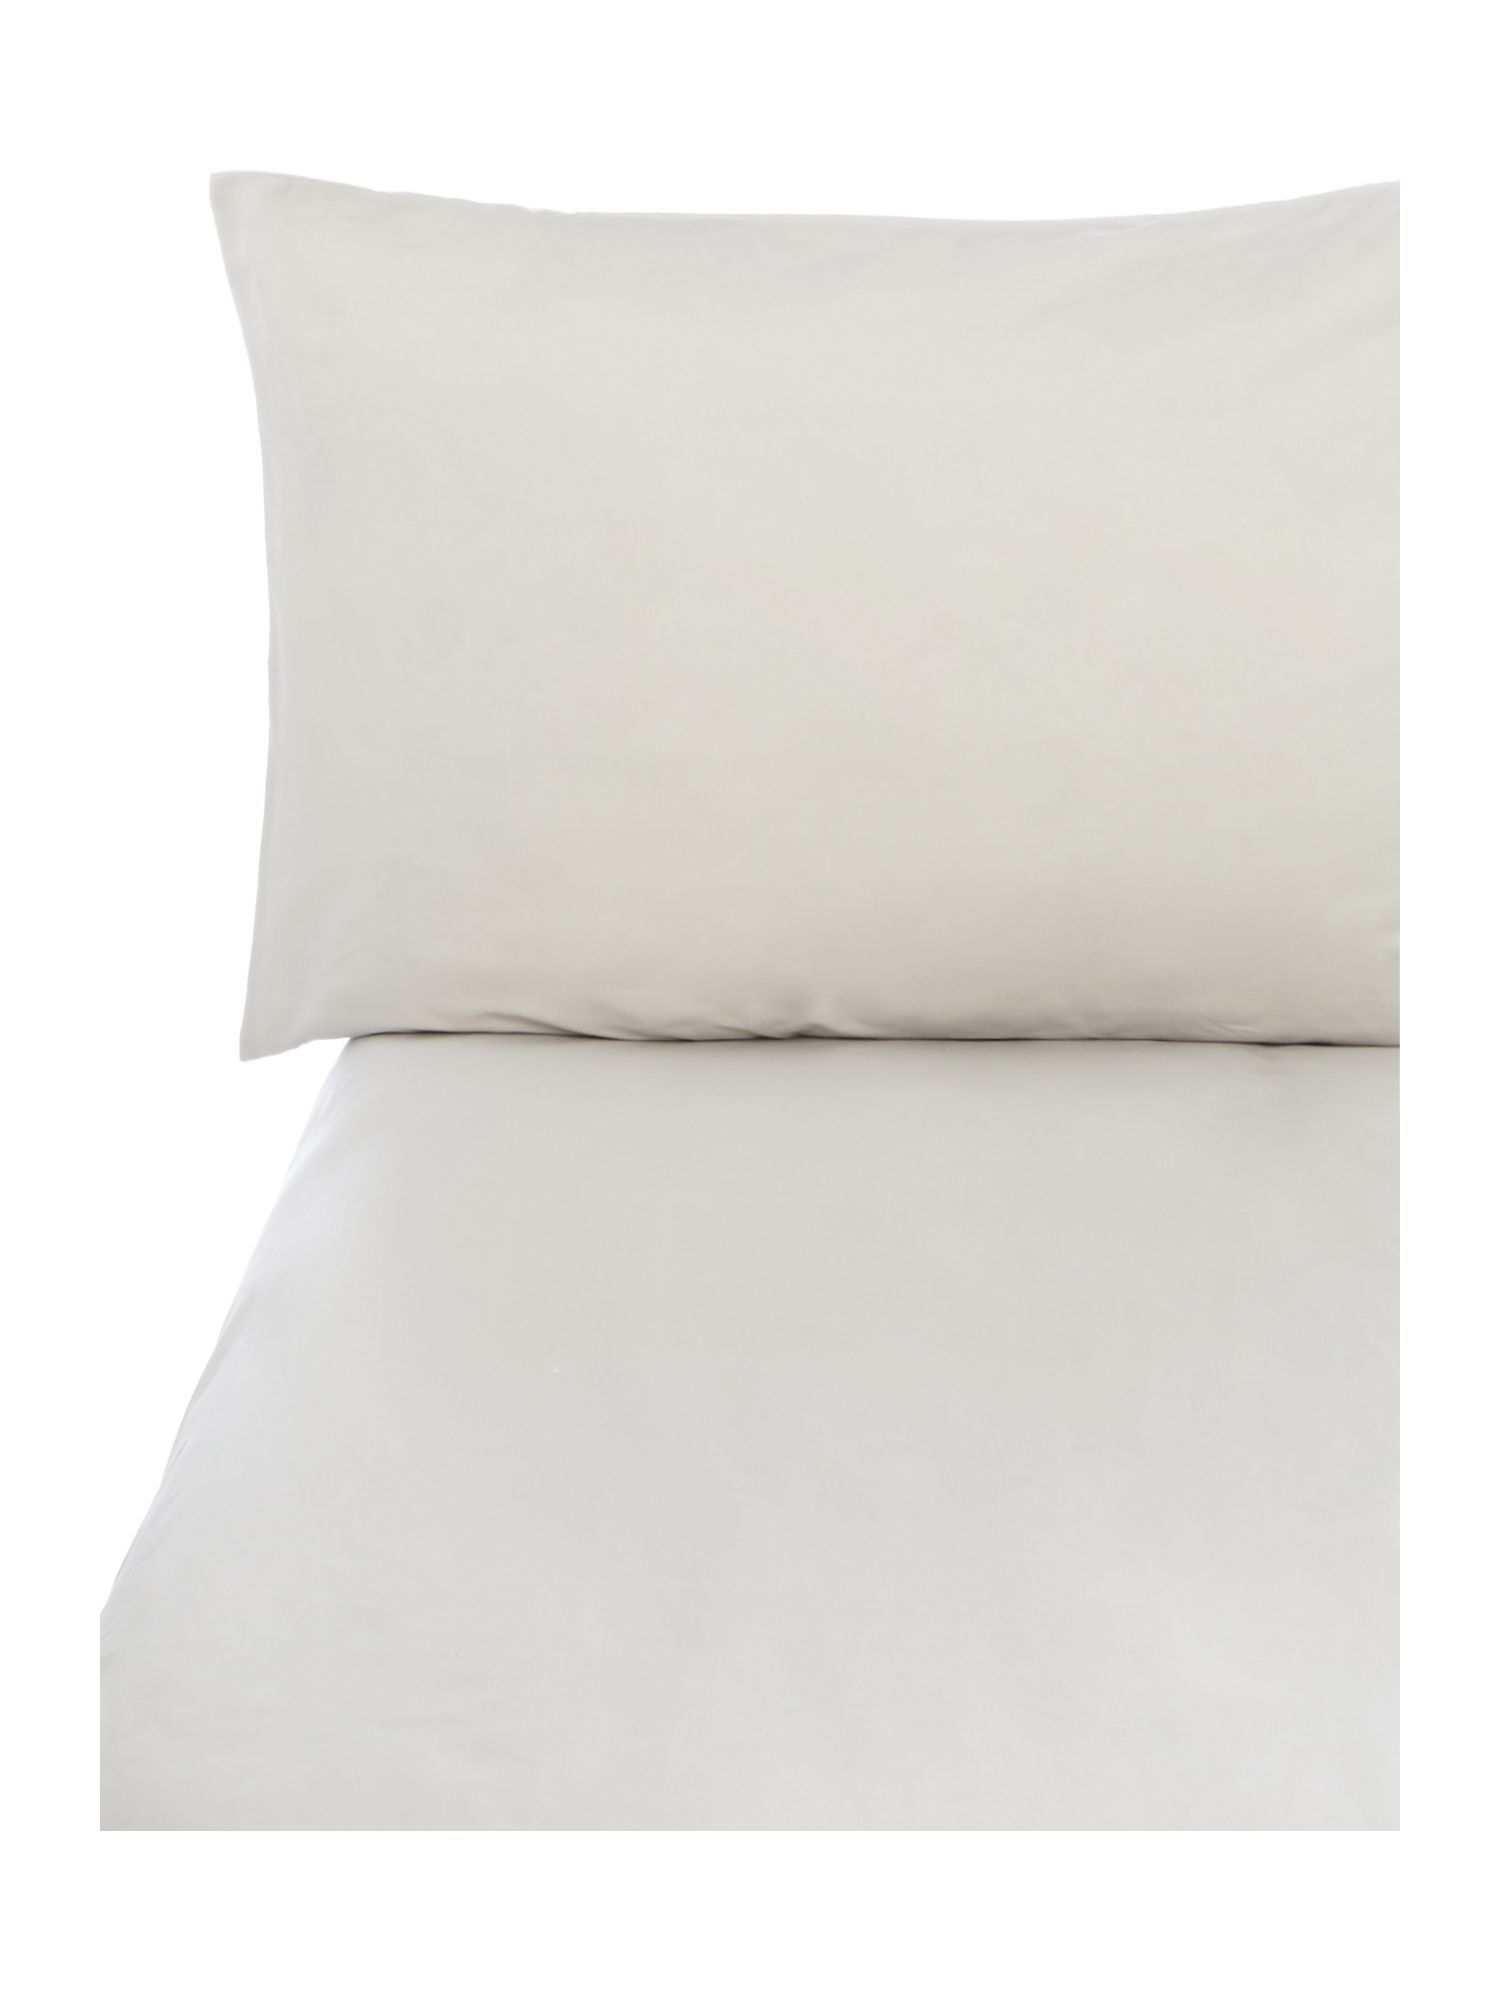 Single sheet housewife pillowcase pair